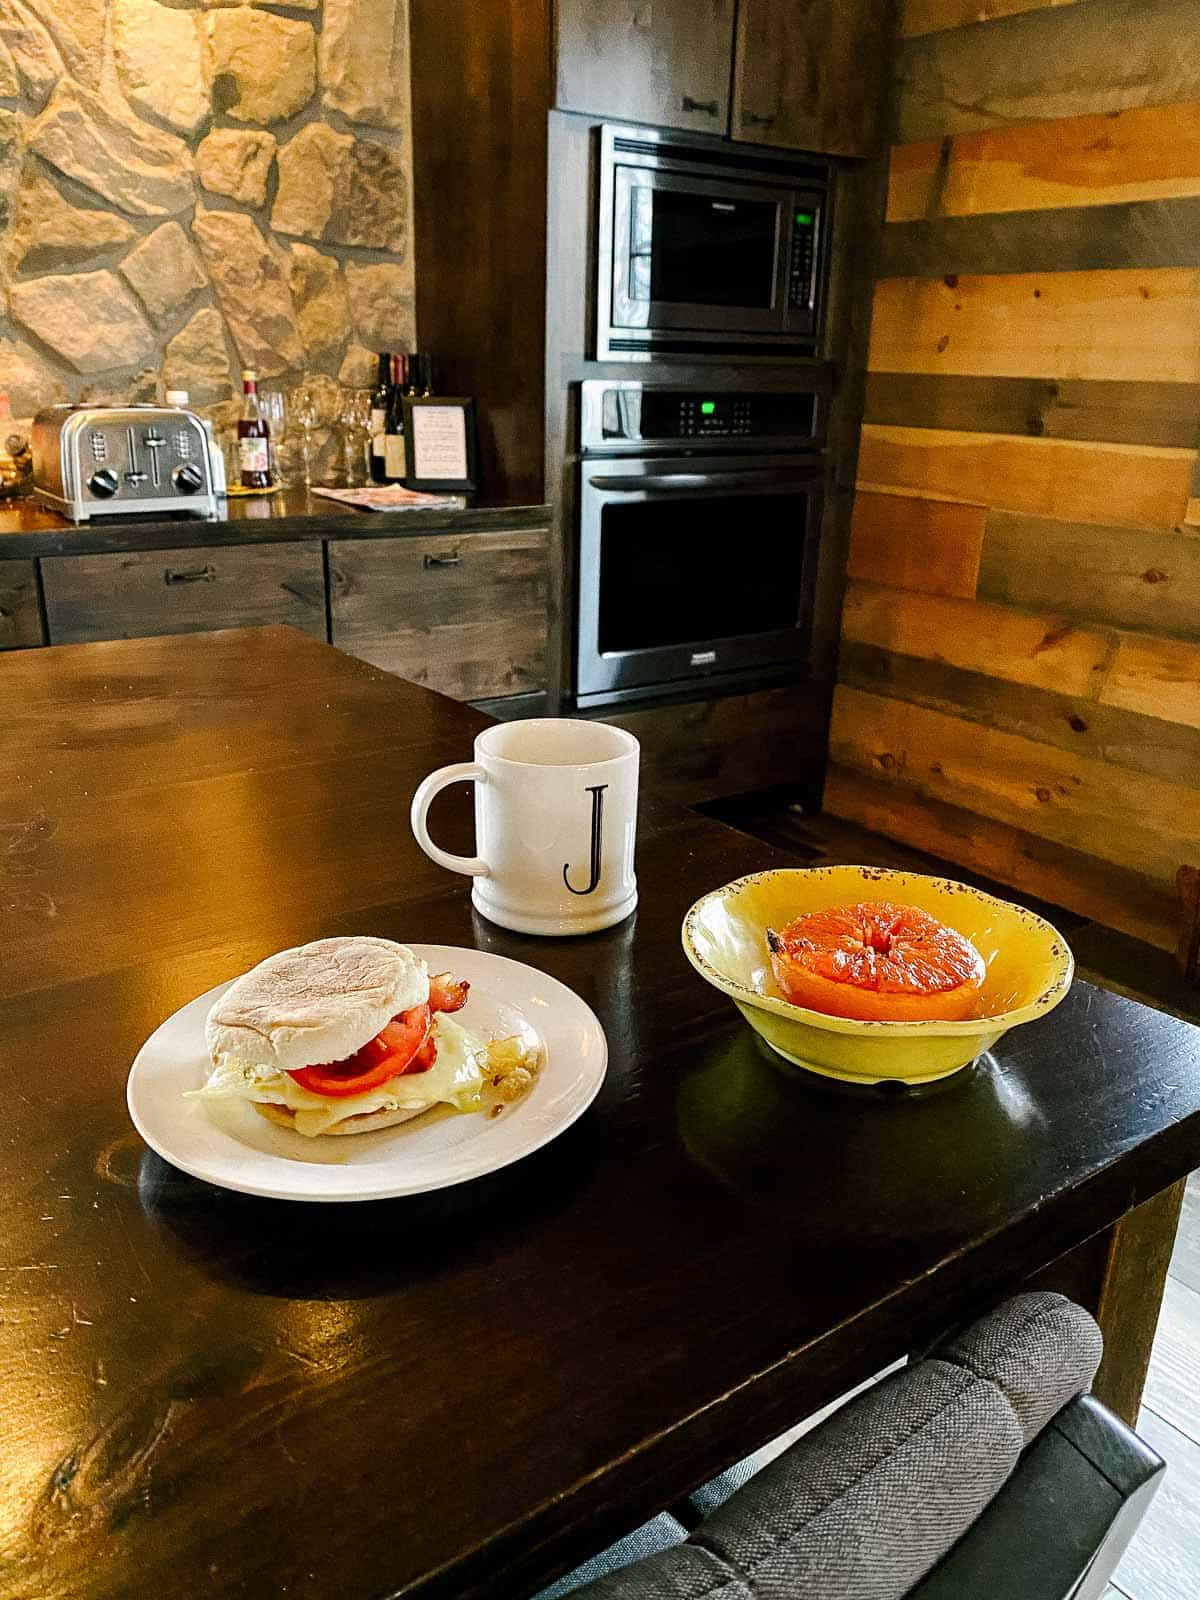 egg cheese tomato bacon breakfast sandwich and bowl with grapefruit and mug on table